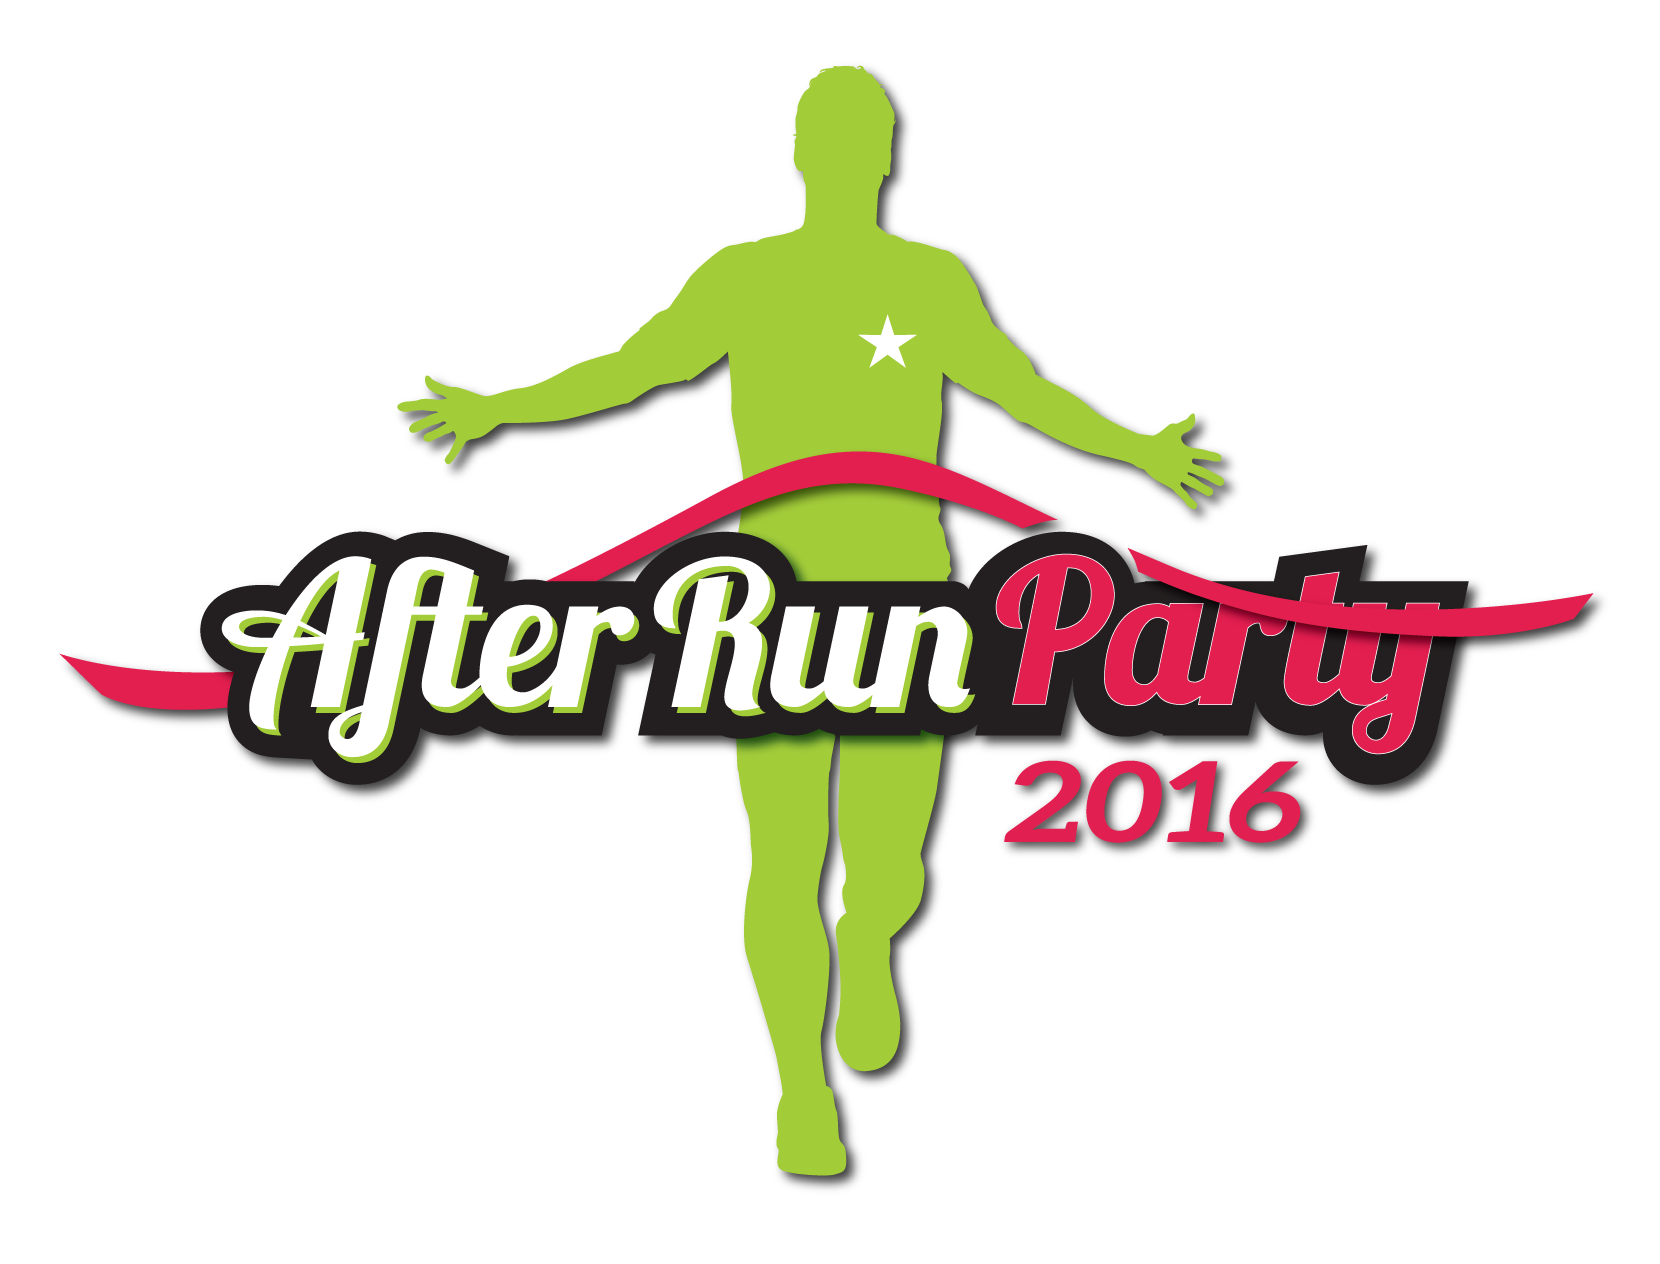 afterrunparty.de